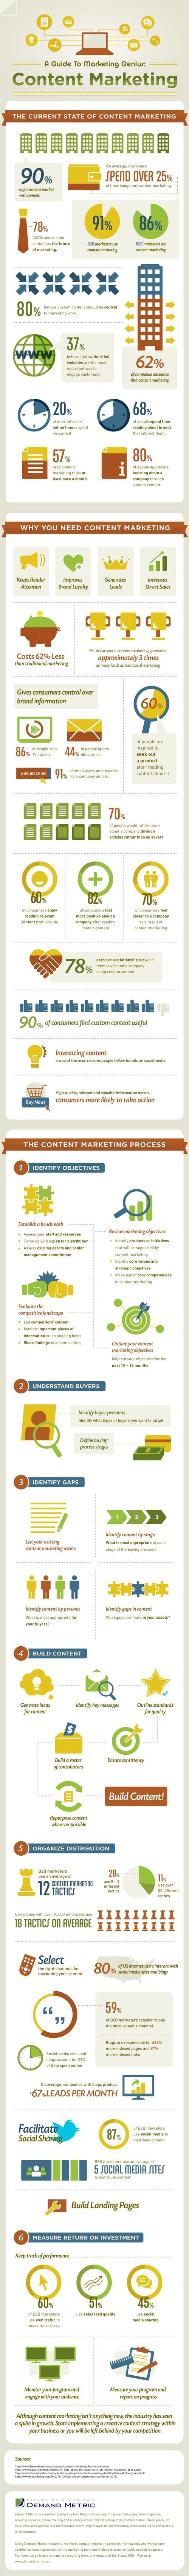 Content Marketing – A Guide to Marketing Genius [Infographic]   Cool Infographics in B2B Marketing & Technology